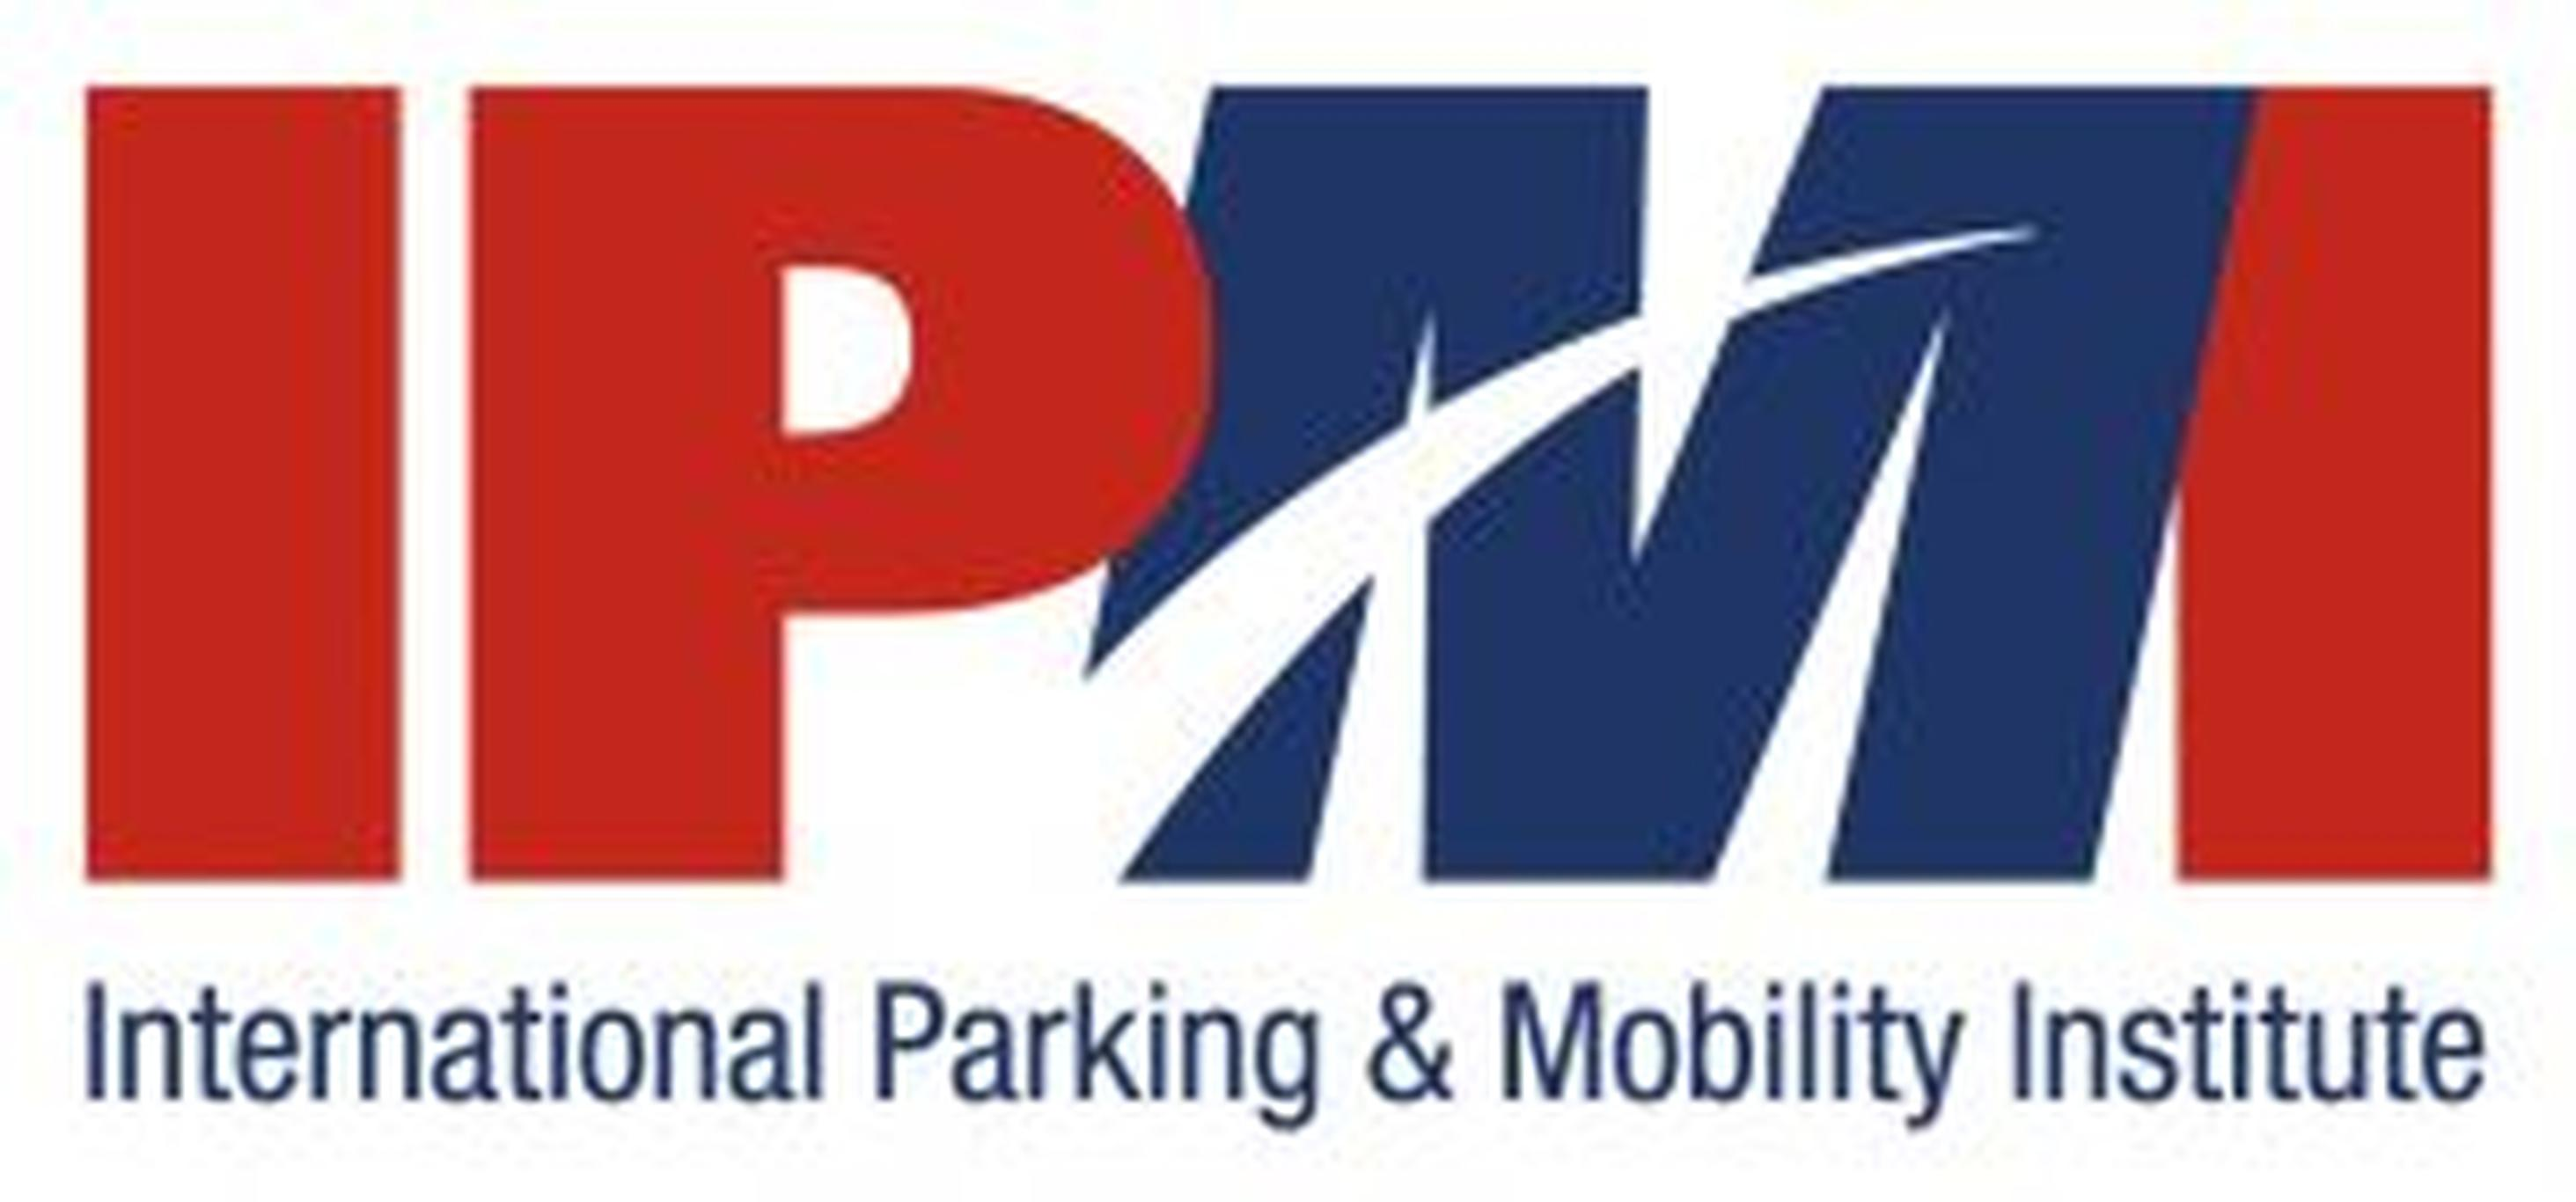 USA's International Parking Institute embaces world of mobility